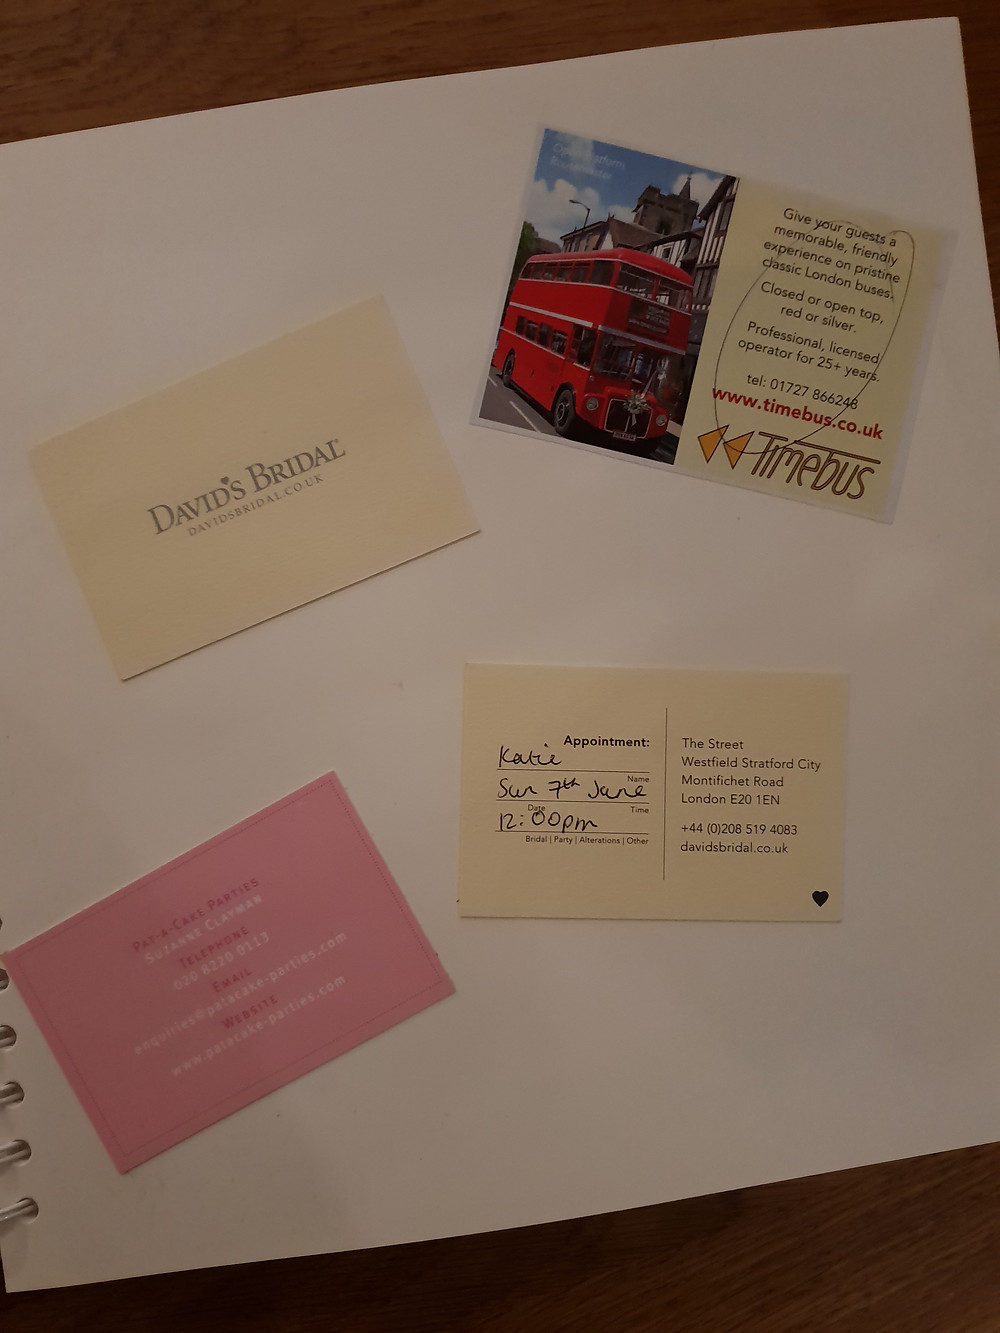 A modern day scrapbook with business cards